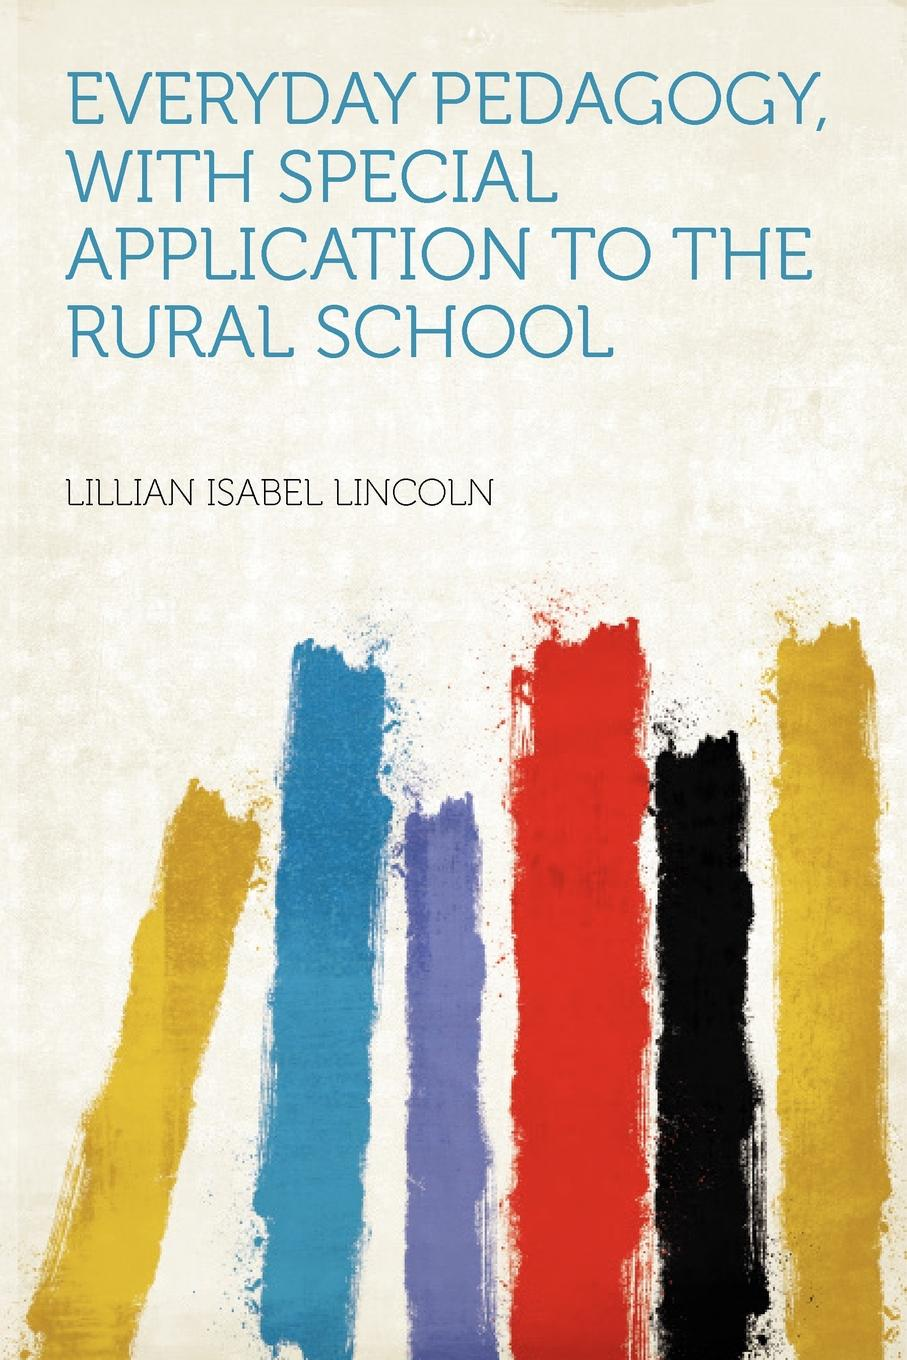 Everyday Pedagogy, With Special Application to the Rural School.